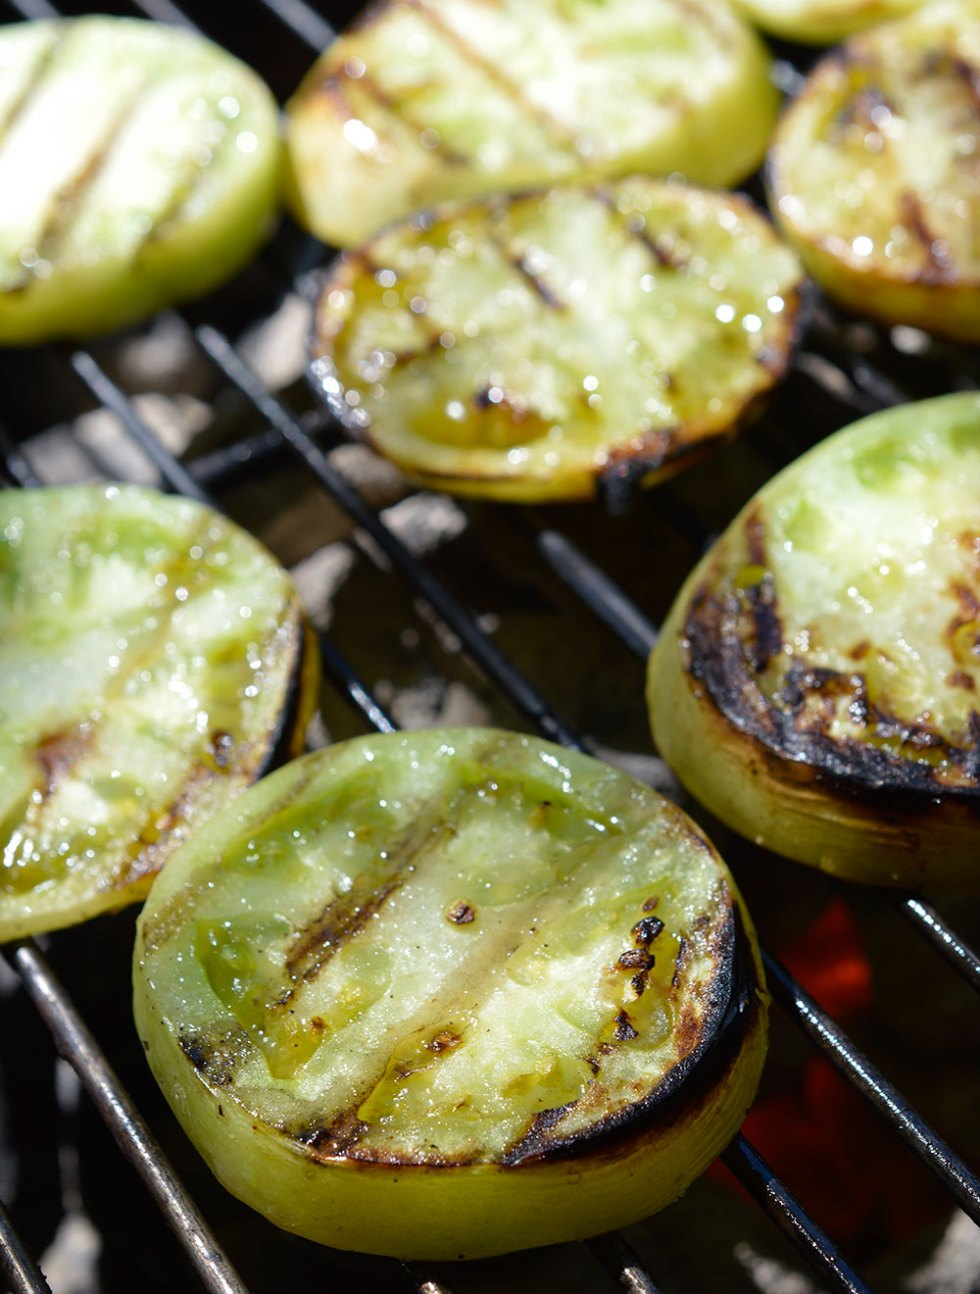 This Grilled Green Tomato Salsa Recipe is perfect for using up those green tomatoes! An easy green salsa verde with a smoky grilled flavor. The perfect summertime appetizer!